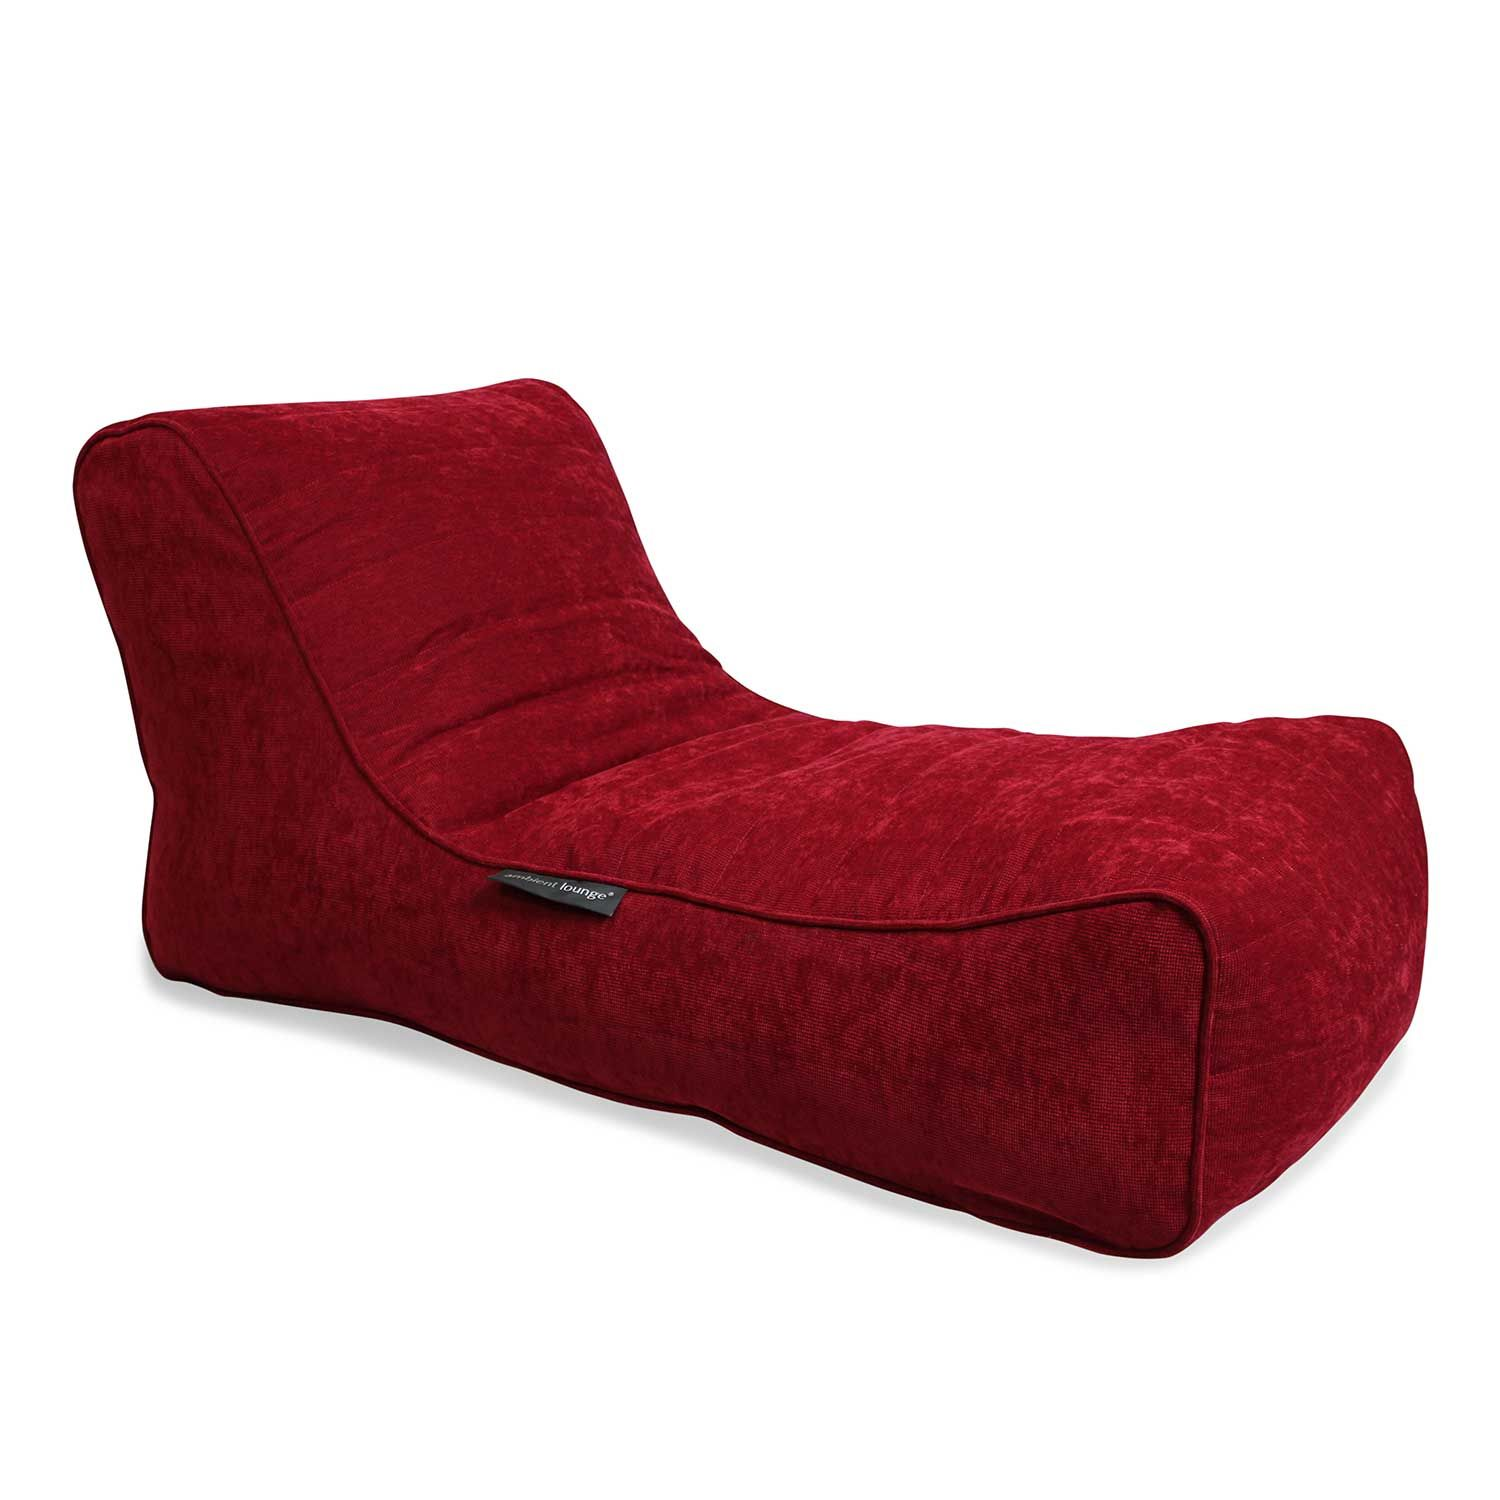 Zitzak Ambient Lounge.Studio Lounger Wildberry Deluxe By Ambient Lounge Outdoor Bean